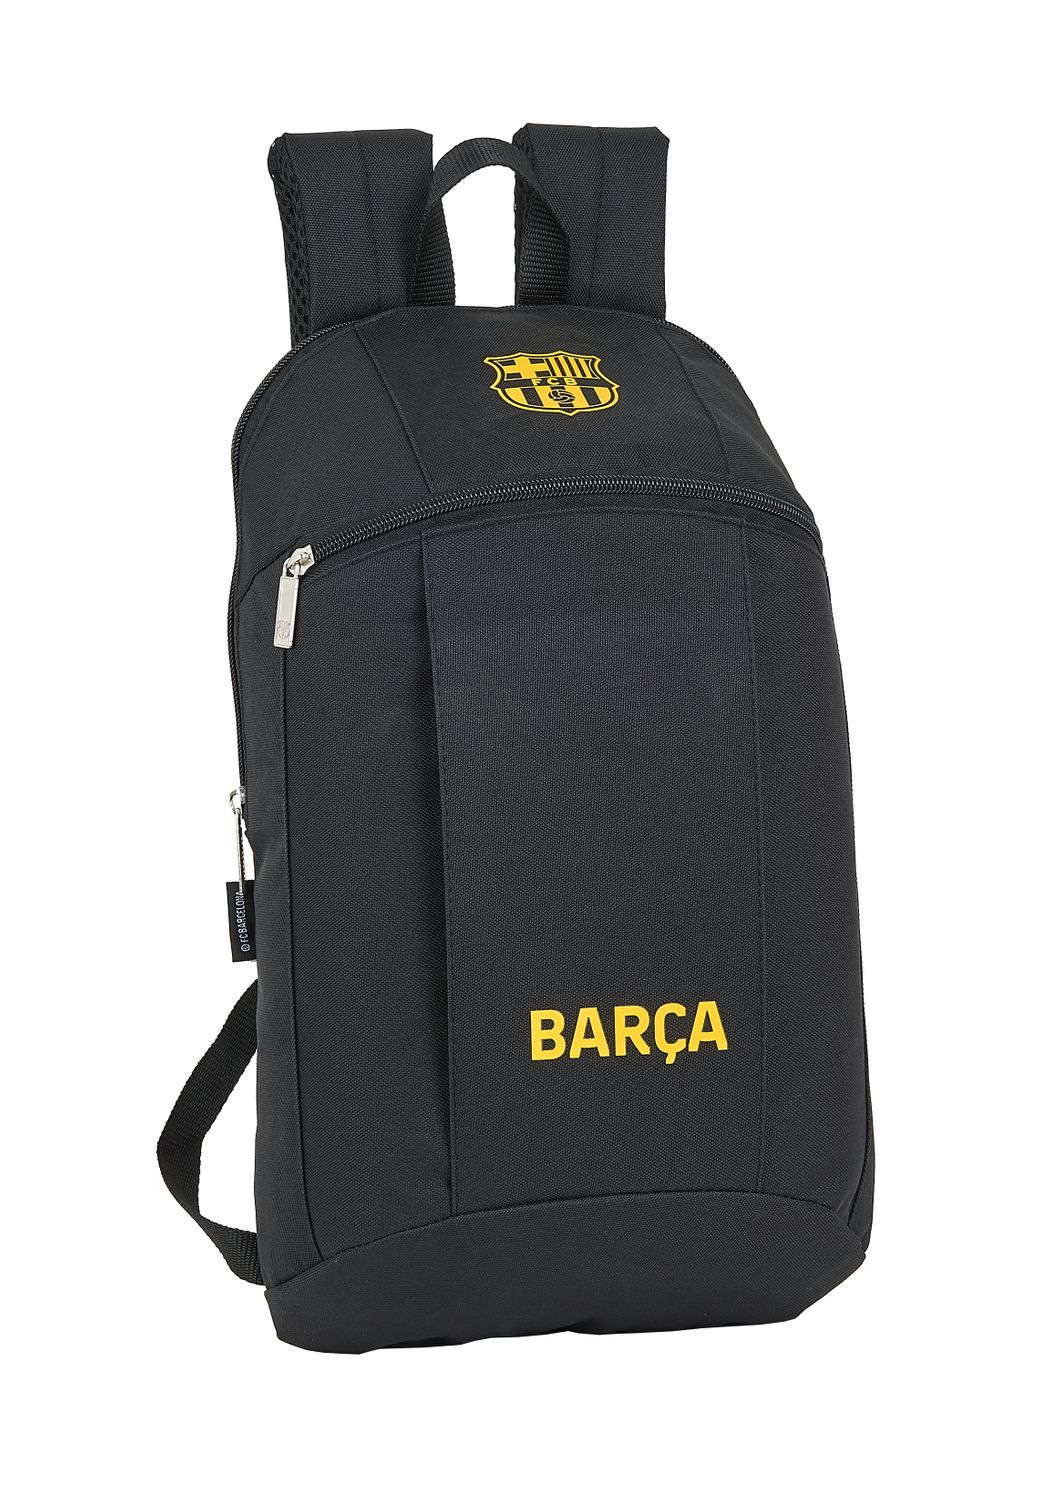 F.C. BARCELONA BLACK Backpack Rucksack 39cm  – image 1